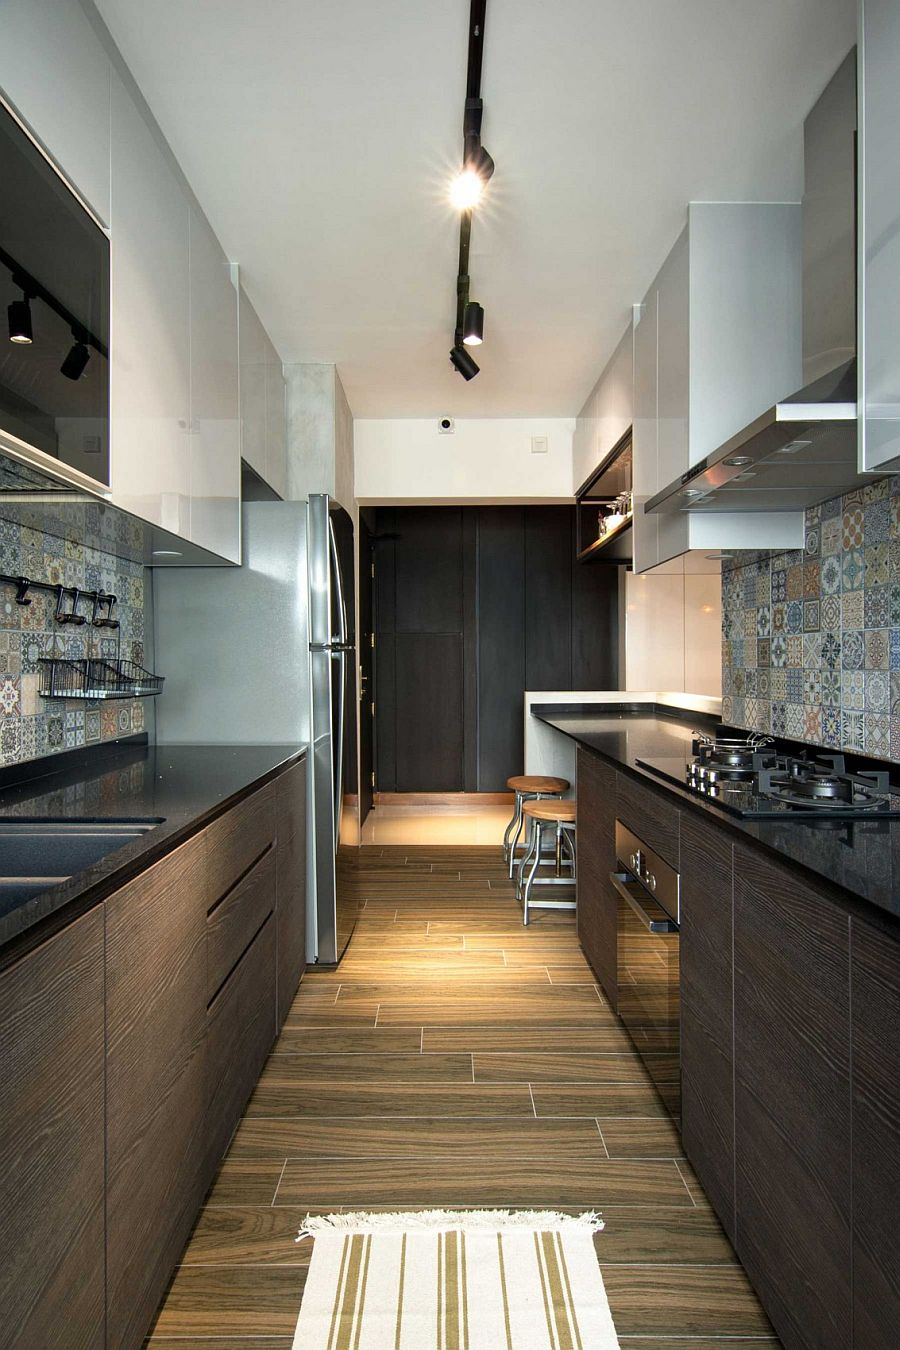 Kitchen Backsplash Singapore contemporary kitchen tiles singapore ceramic floor wall in